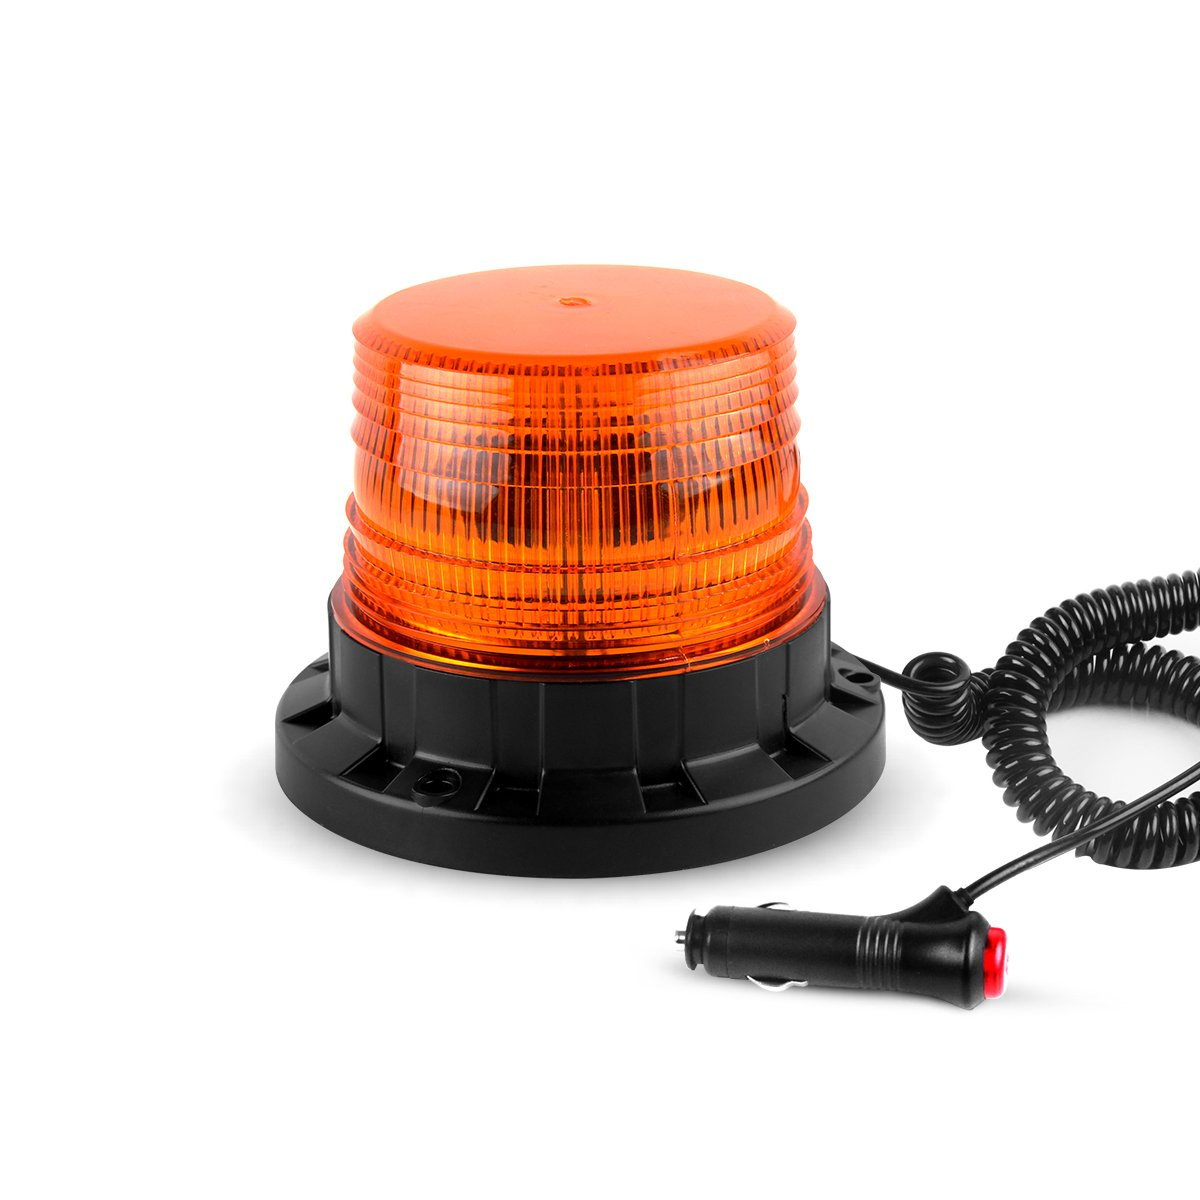 GPPOWER LED Emergency Car Lights, Strobe Flashing Warning Beacon Light With Magnetic Mount 9-85V GUANGPAI AUTO